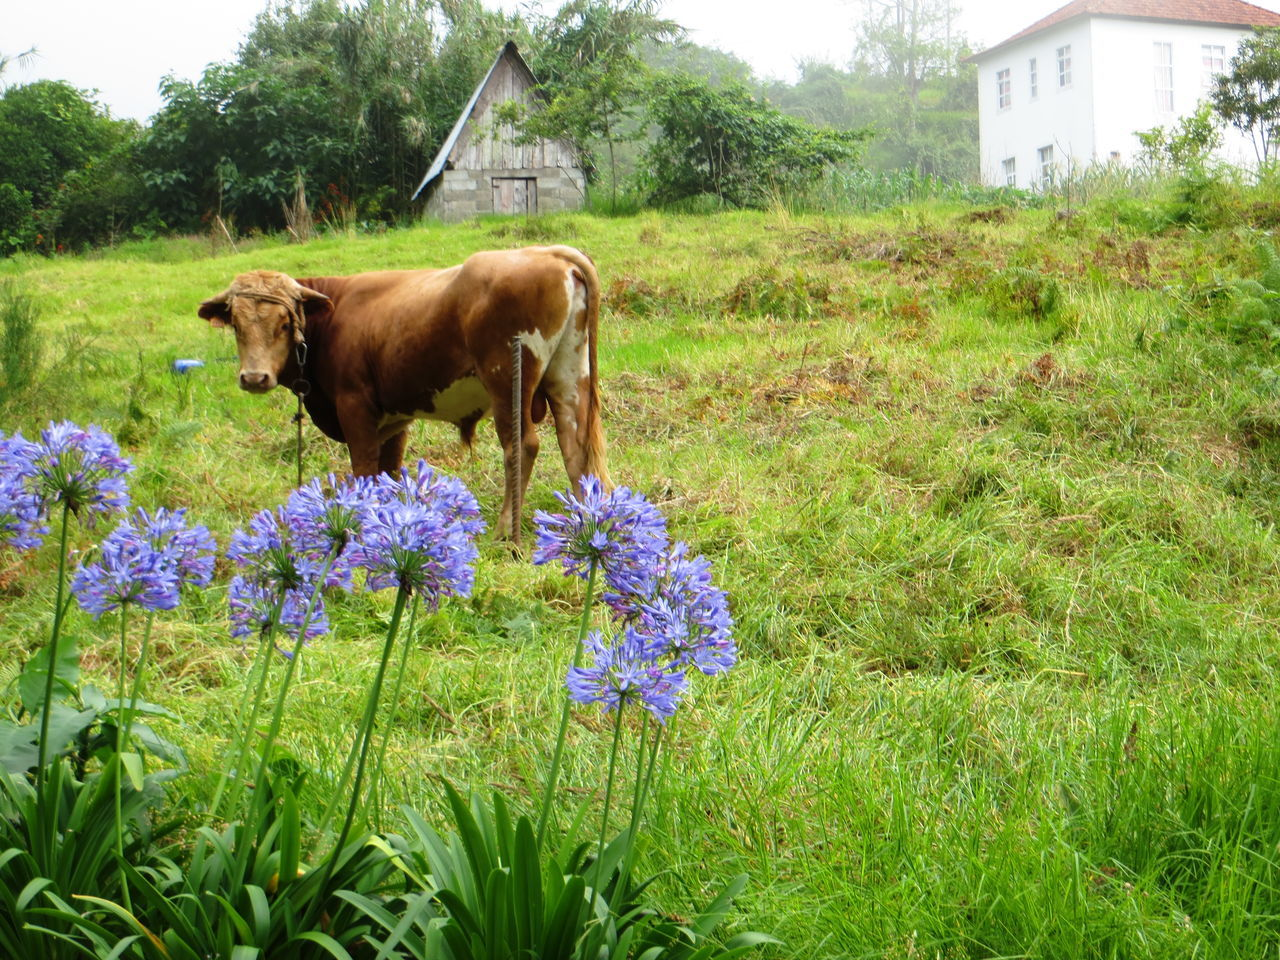 Agapanthus Animal Themes Beauty In Nature Cow Cowbells Day Farm Building Field Flower Freshness Grass Growth Livestock Mammal Nature No People Outdoors Plant Sky